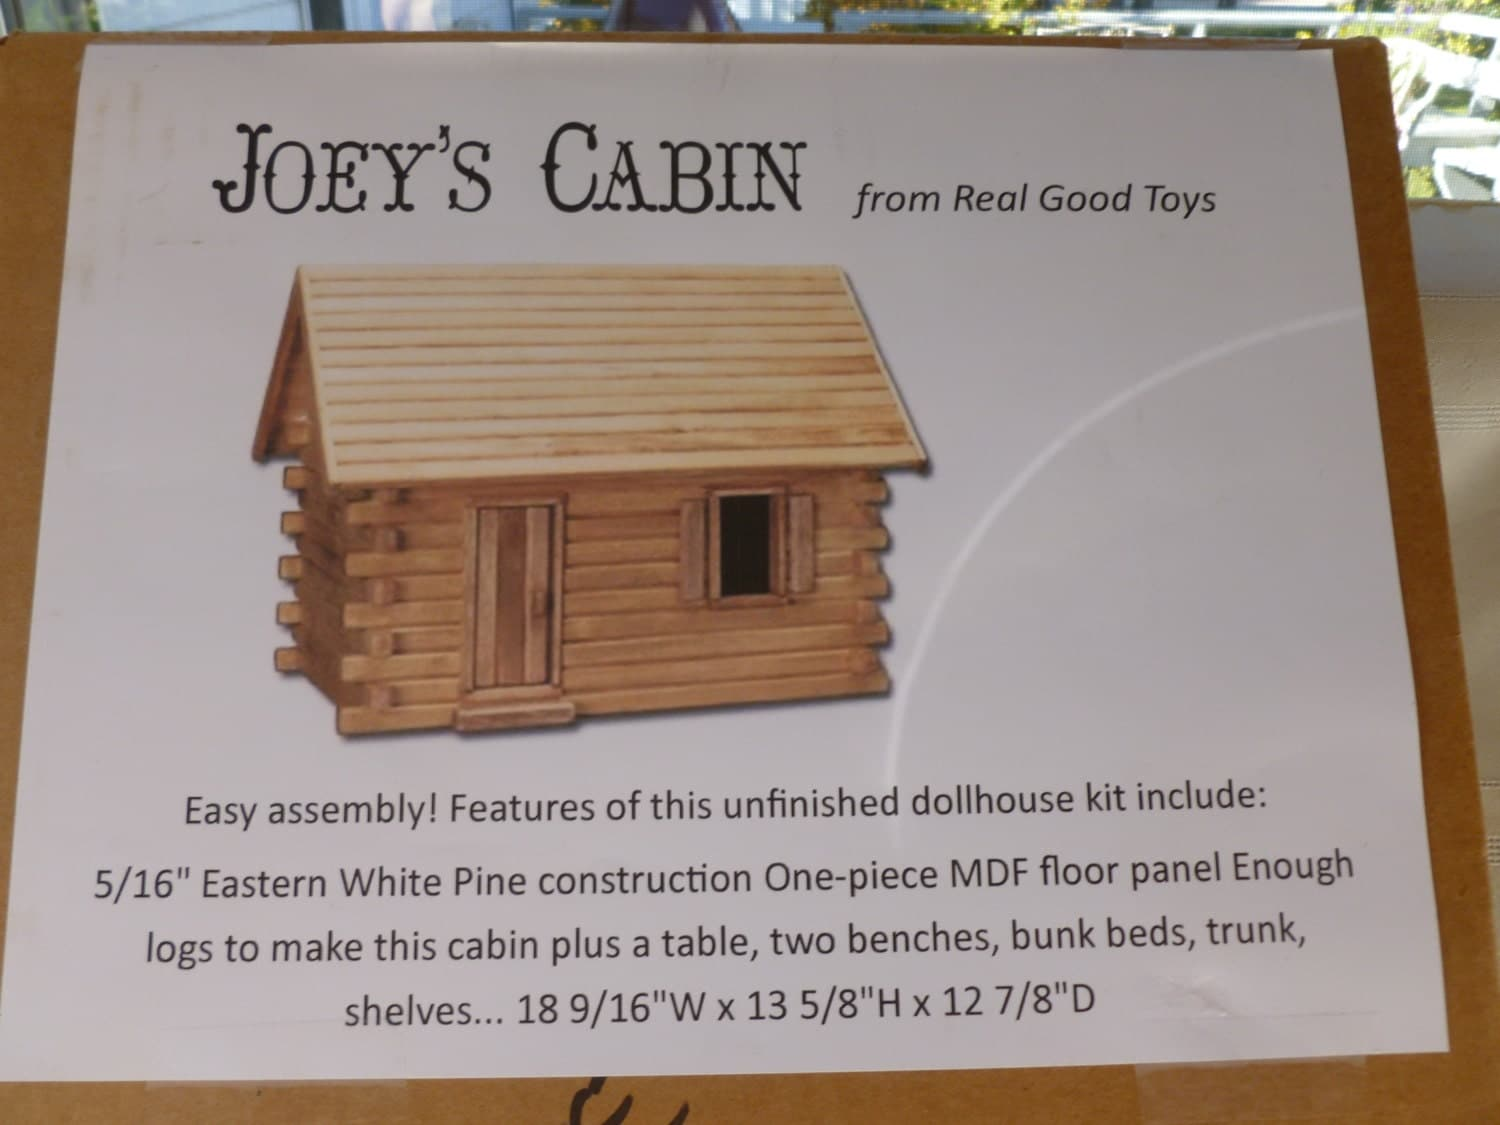 Wonderful image of Log Cabin Model Kit Real Good Toys Joeys Cabin Etsy with #714726 color and 1500x1125 pixels